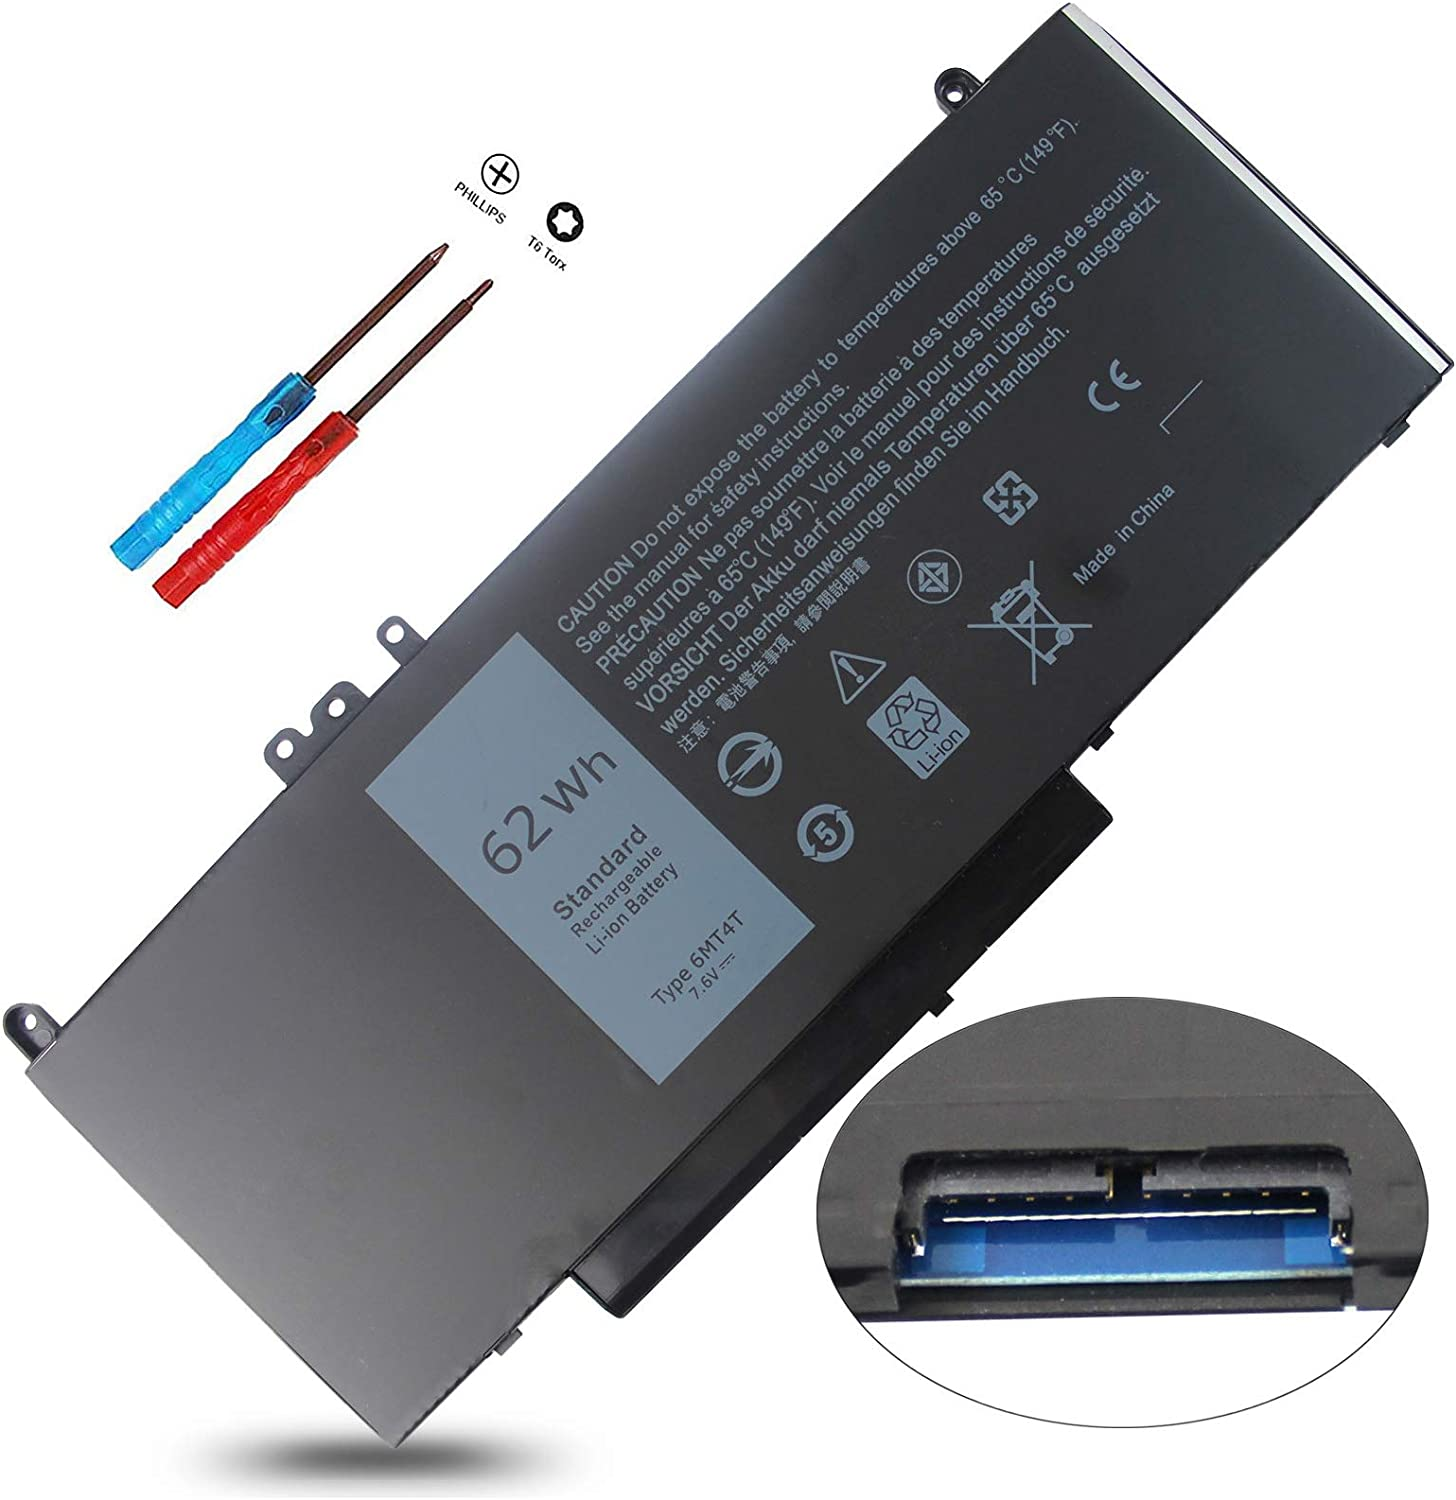 6MT4T 7V69Y E5470 E5570 Battery Compatible with Dell Latitude E5470 E5570 E5270 5470 5570 Precision 3510 M3510 62Wh, 79VRK 079VRK TXF9M 0TXF9M HK6DV 0HK6DV 07V69Y 535NC 15 14 7.6V 62Whr 4-Cell